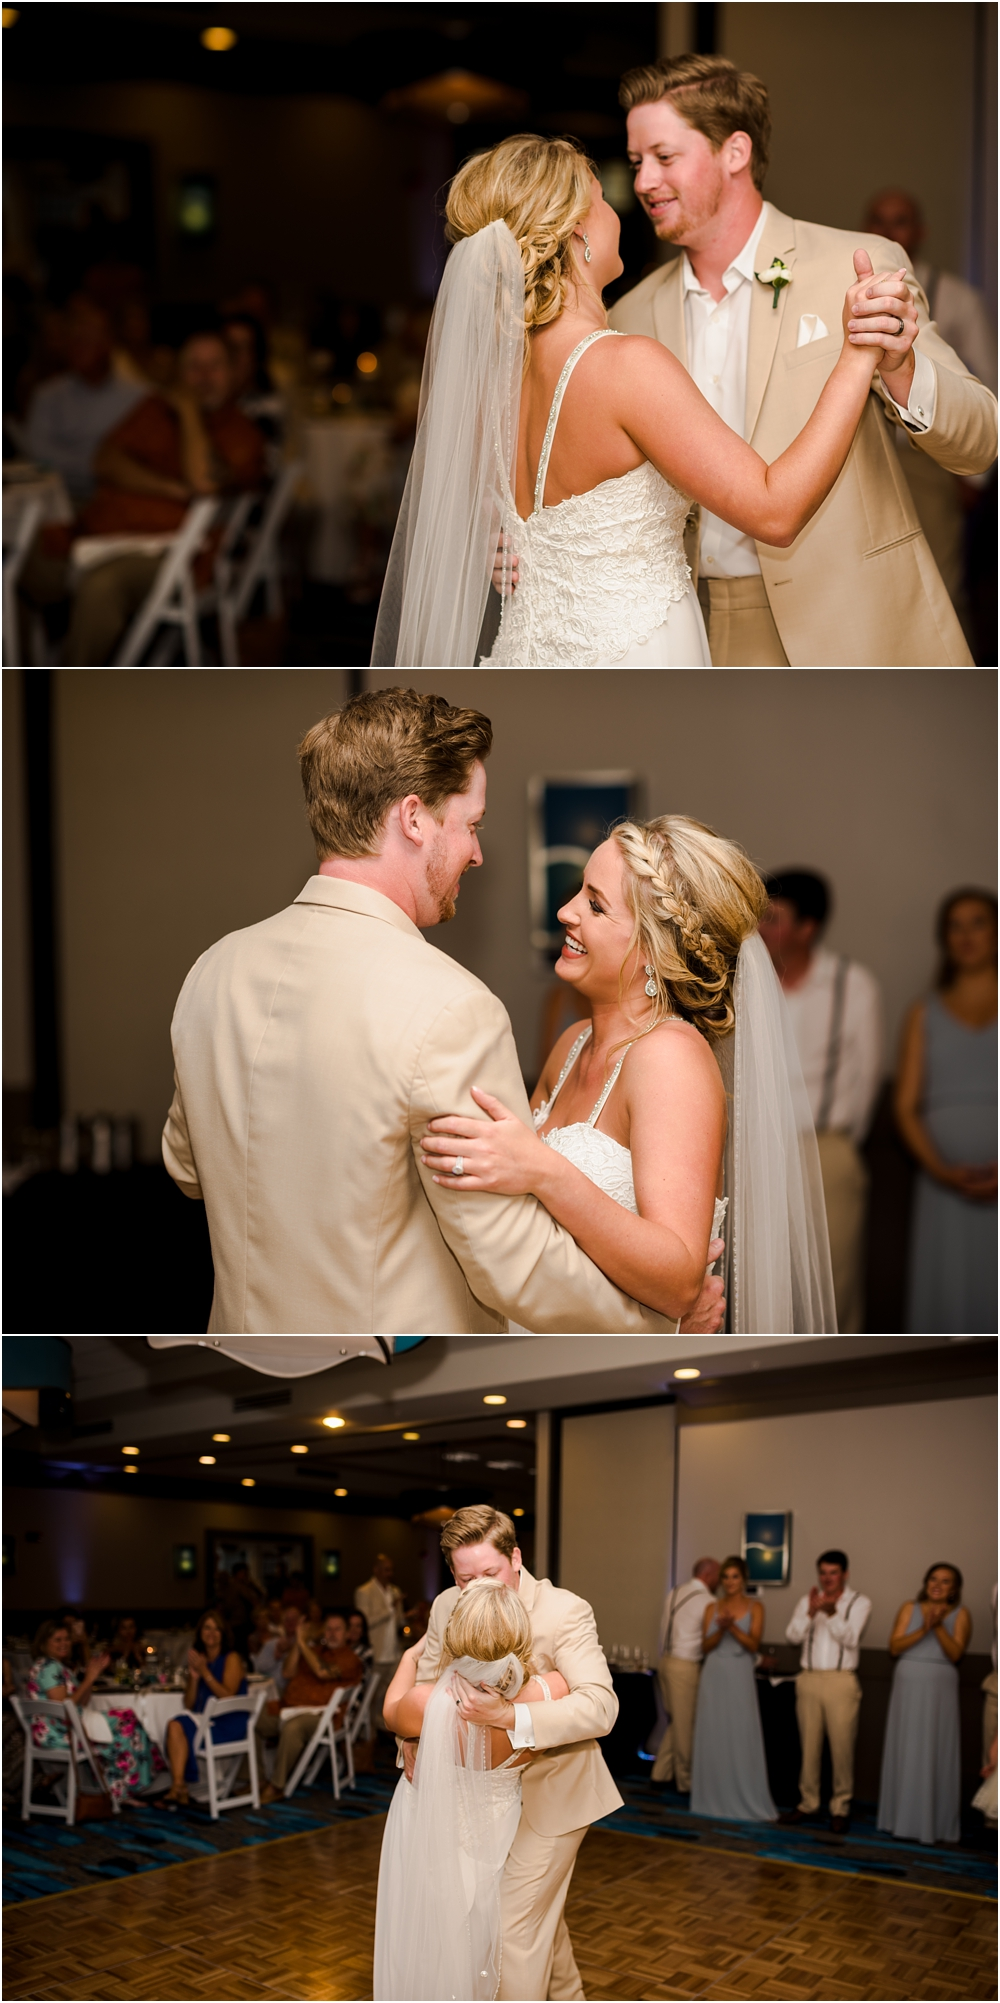 dillard-florida-wedding-photographer-panama-city-beach-dothan-tallahassee-kiersten-grant-photography-138.jpg